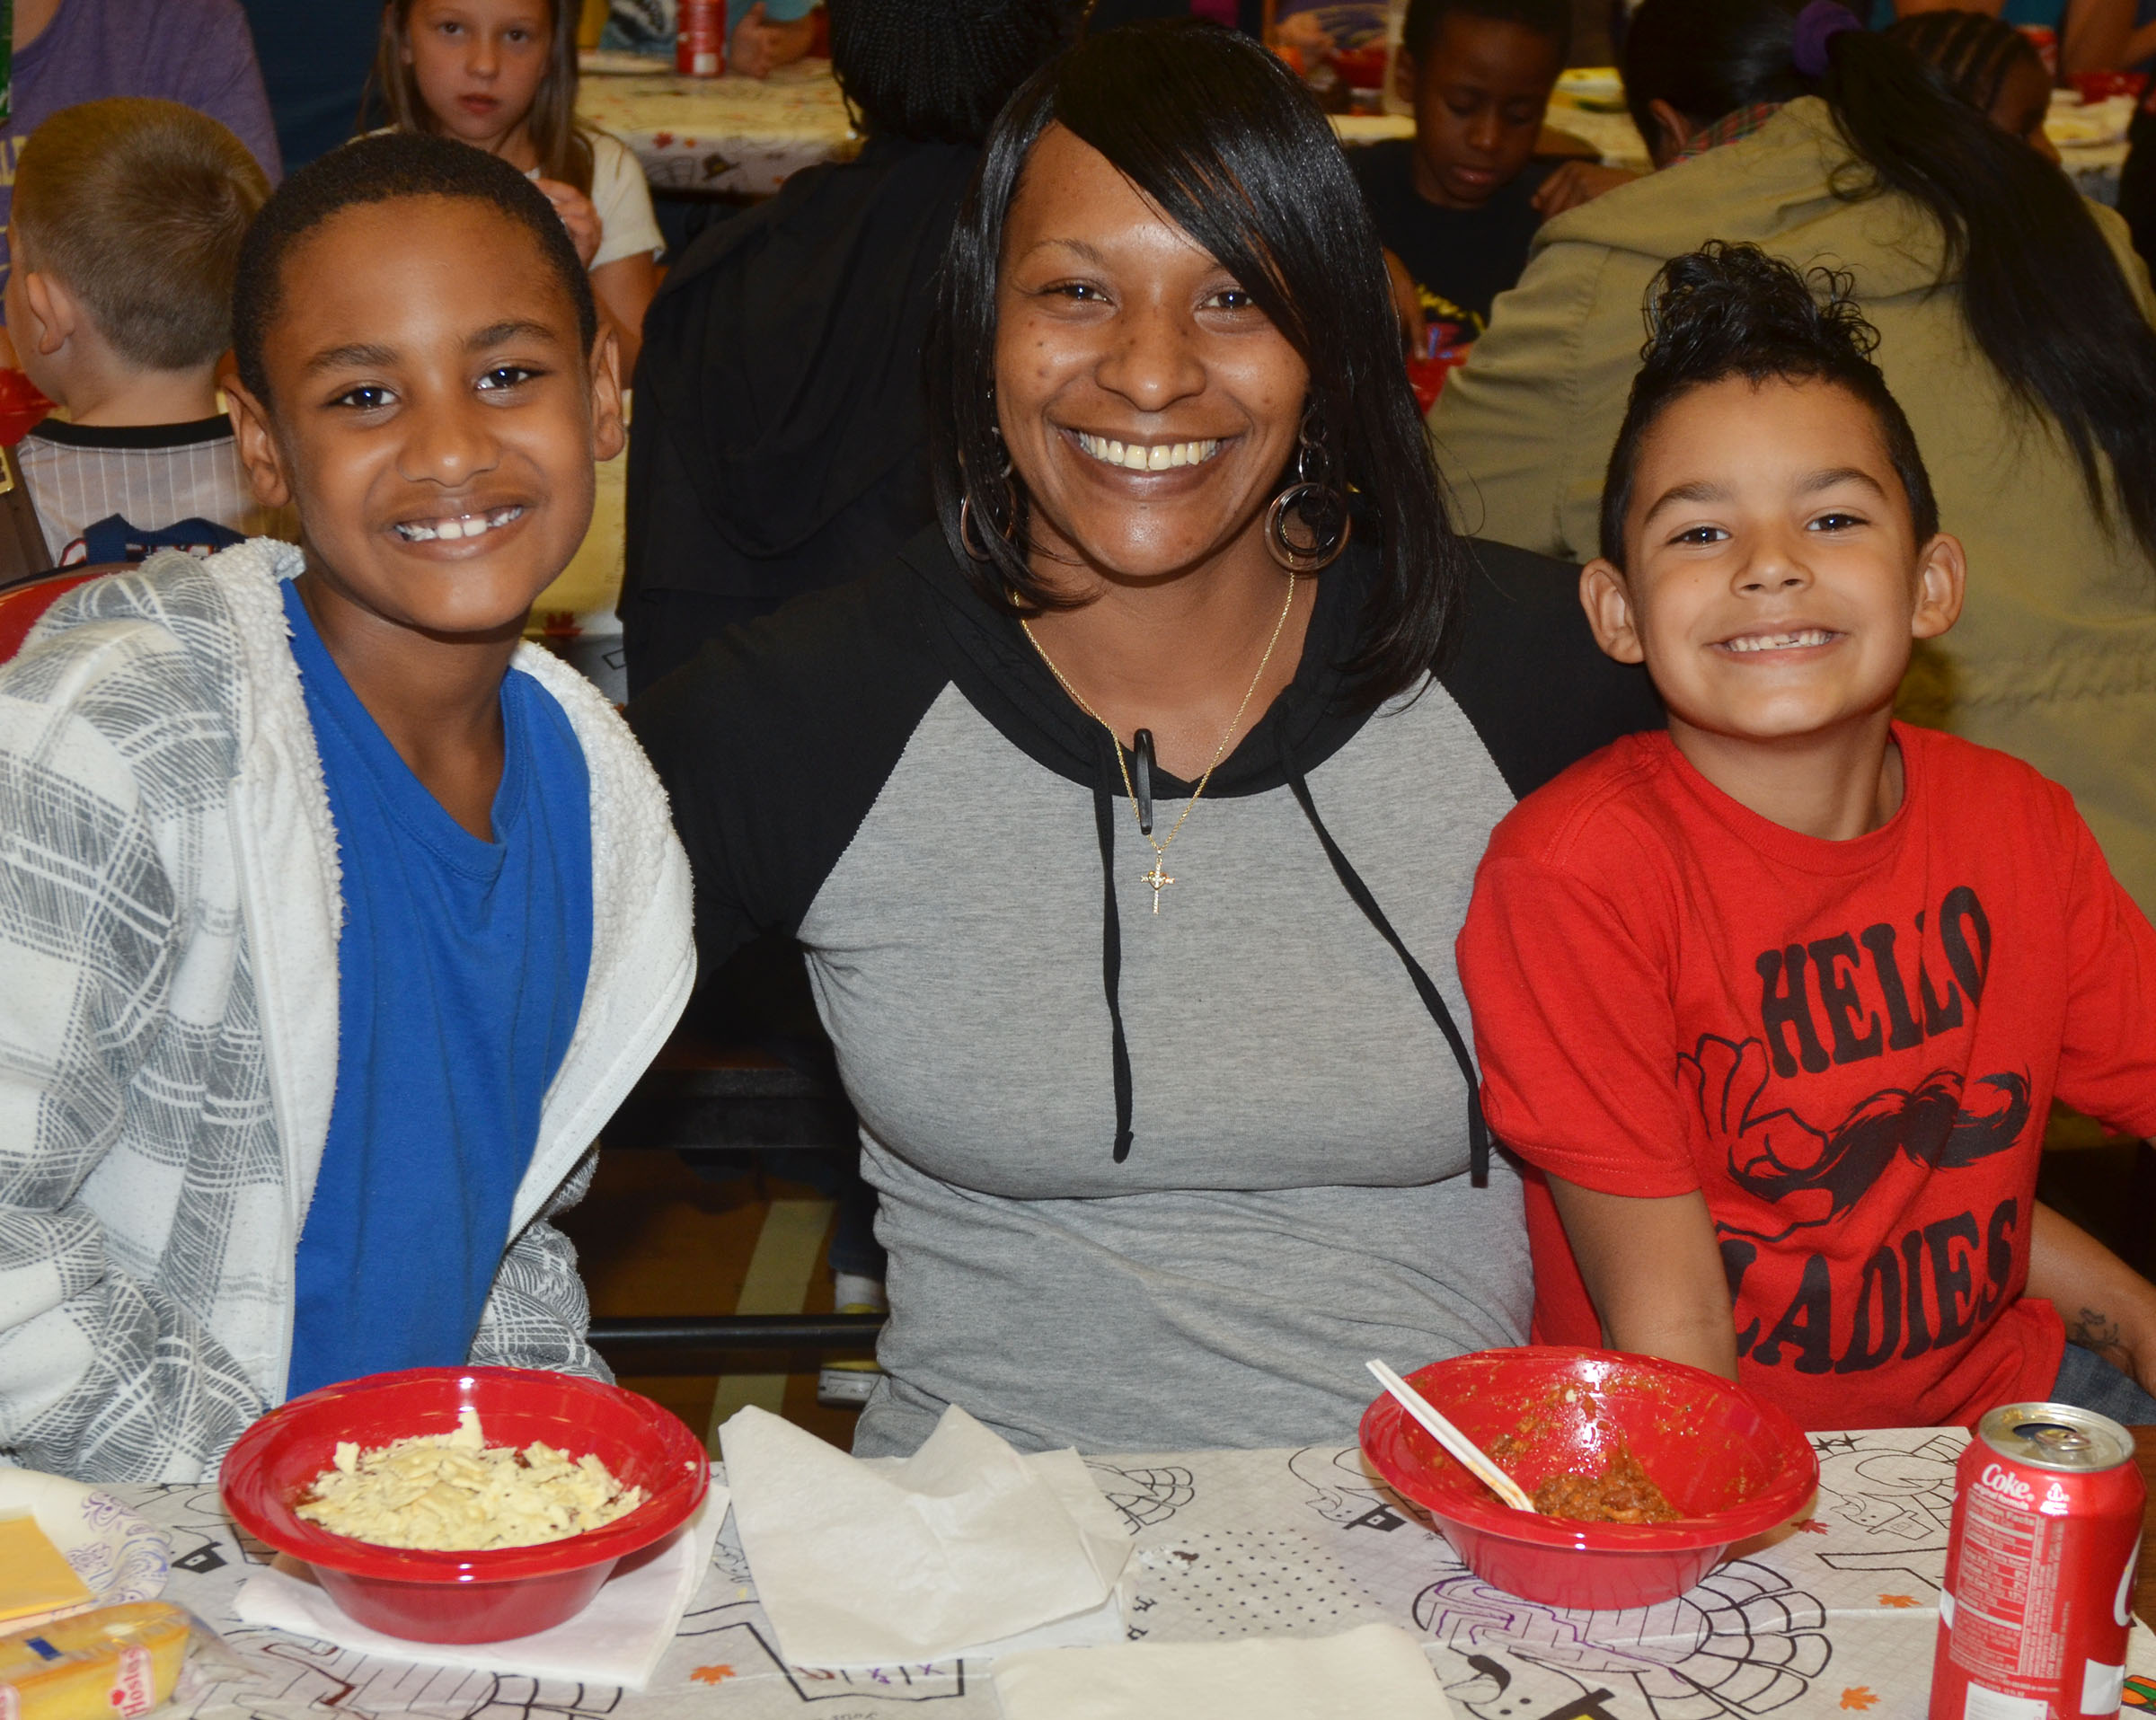 CES third-grader Shaiden Calhoun, at left, and first-grader Rizzo McKenzie, at right, pose for a photo with their mother, Chanda Calhoun.